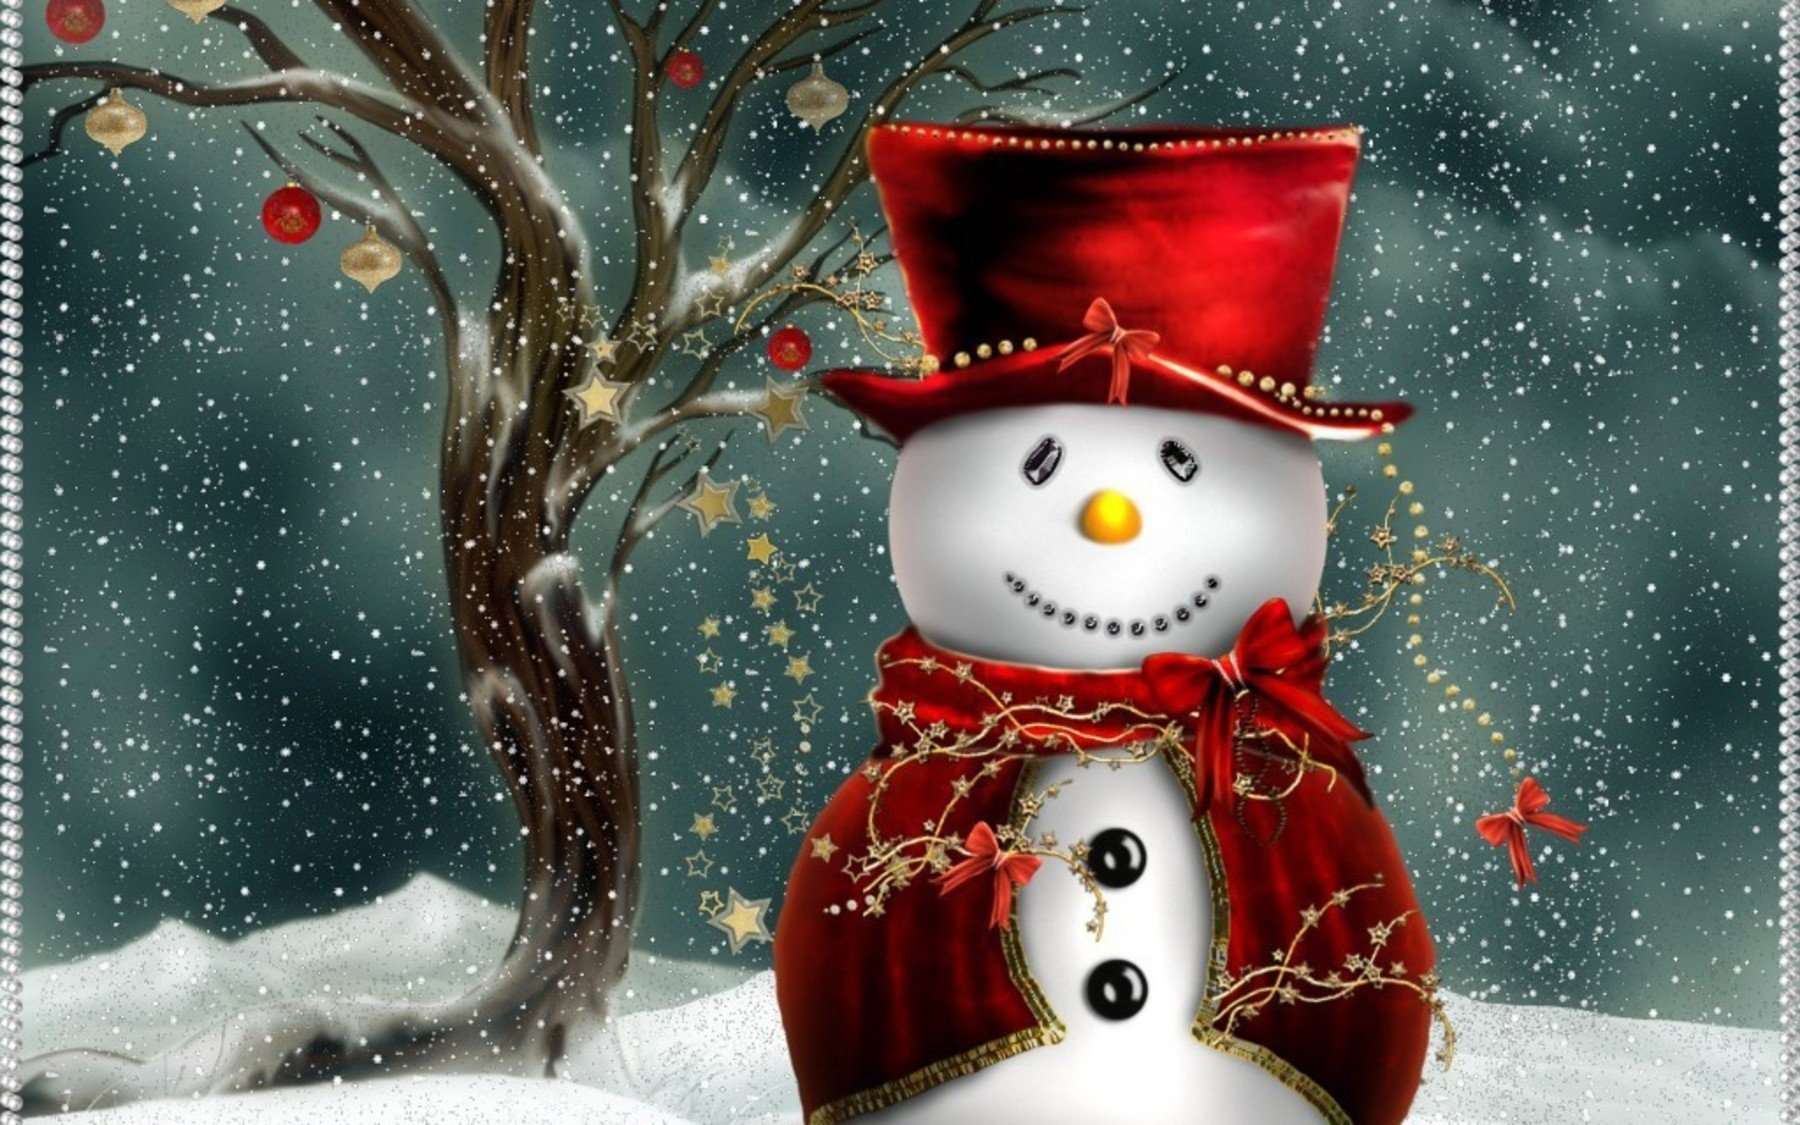 228 snowman hd wallpapers | background images - wallpaper abyss